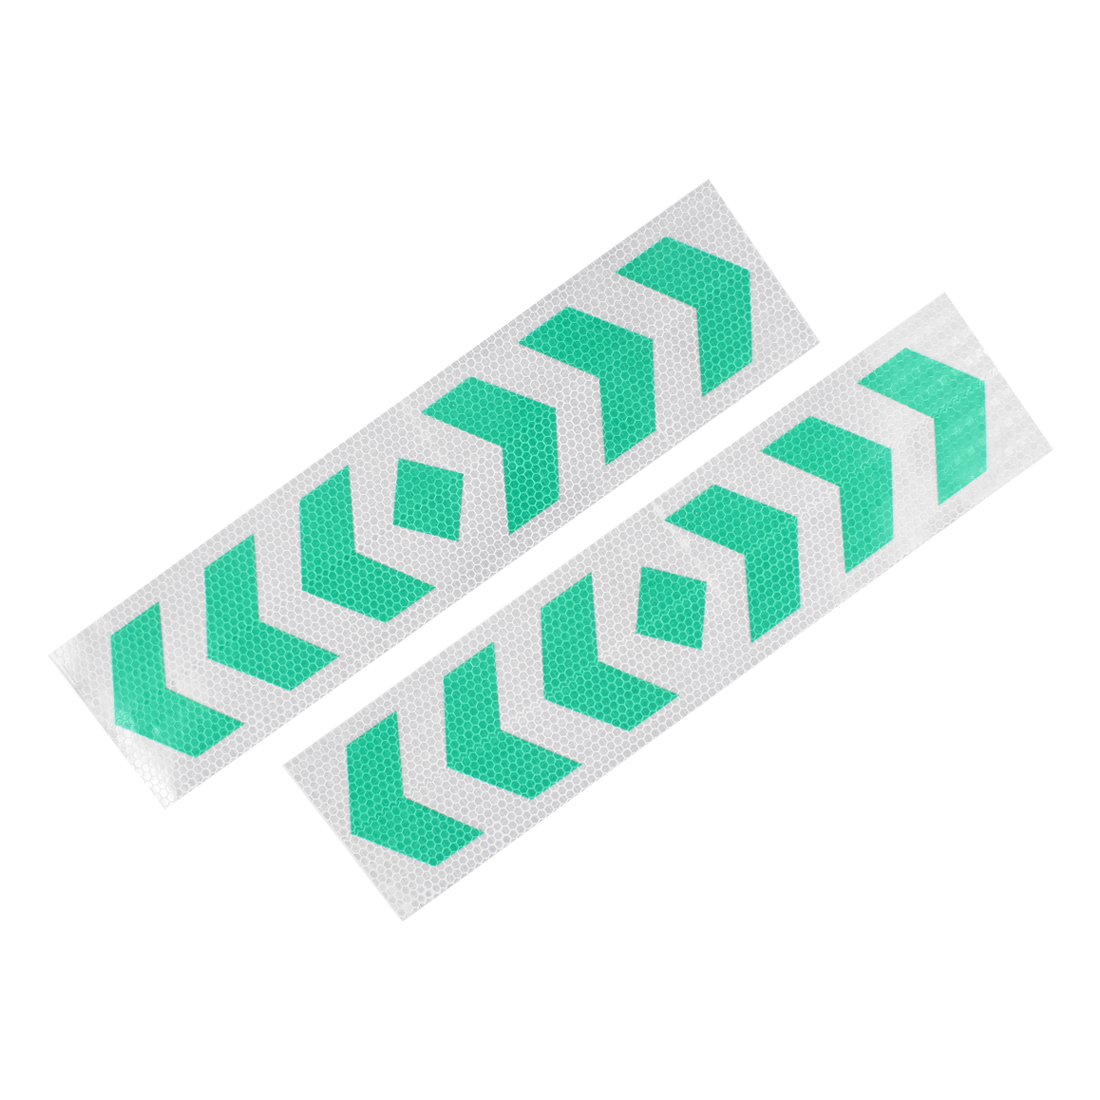 2 Pcs Plastic Arrows Printed Type Car SUV Reflective Warning Sign Sticker Tape Green White